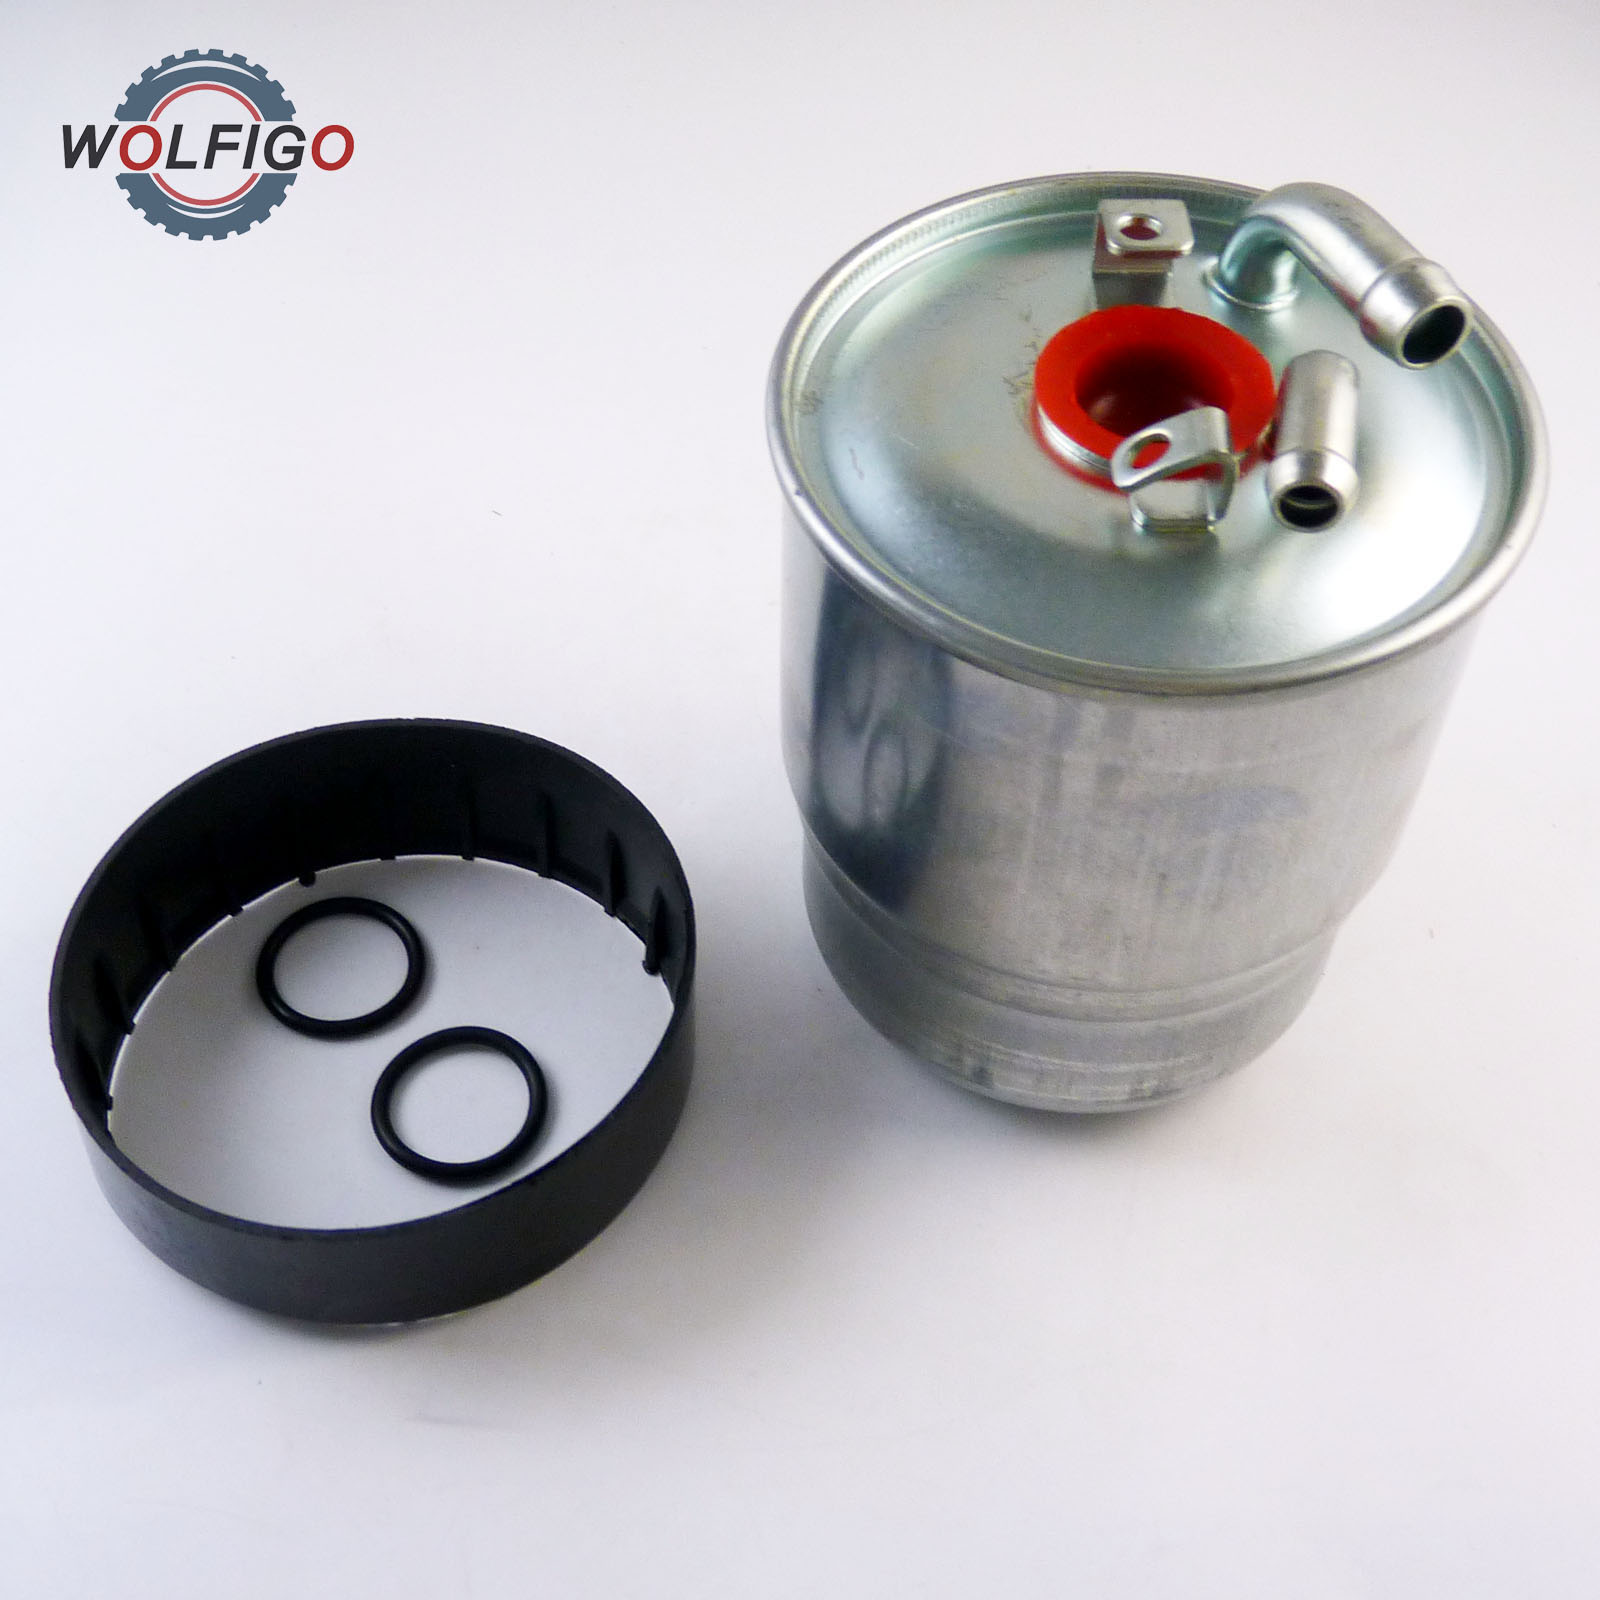 medium resolution of wolfigo fuel filter 6420920501 for mercedes benz r350 gl320 e320 for dodge freightliner sprinter 2500 dodge sprinter 3500